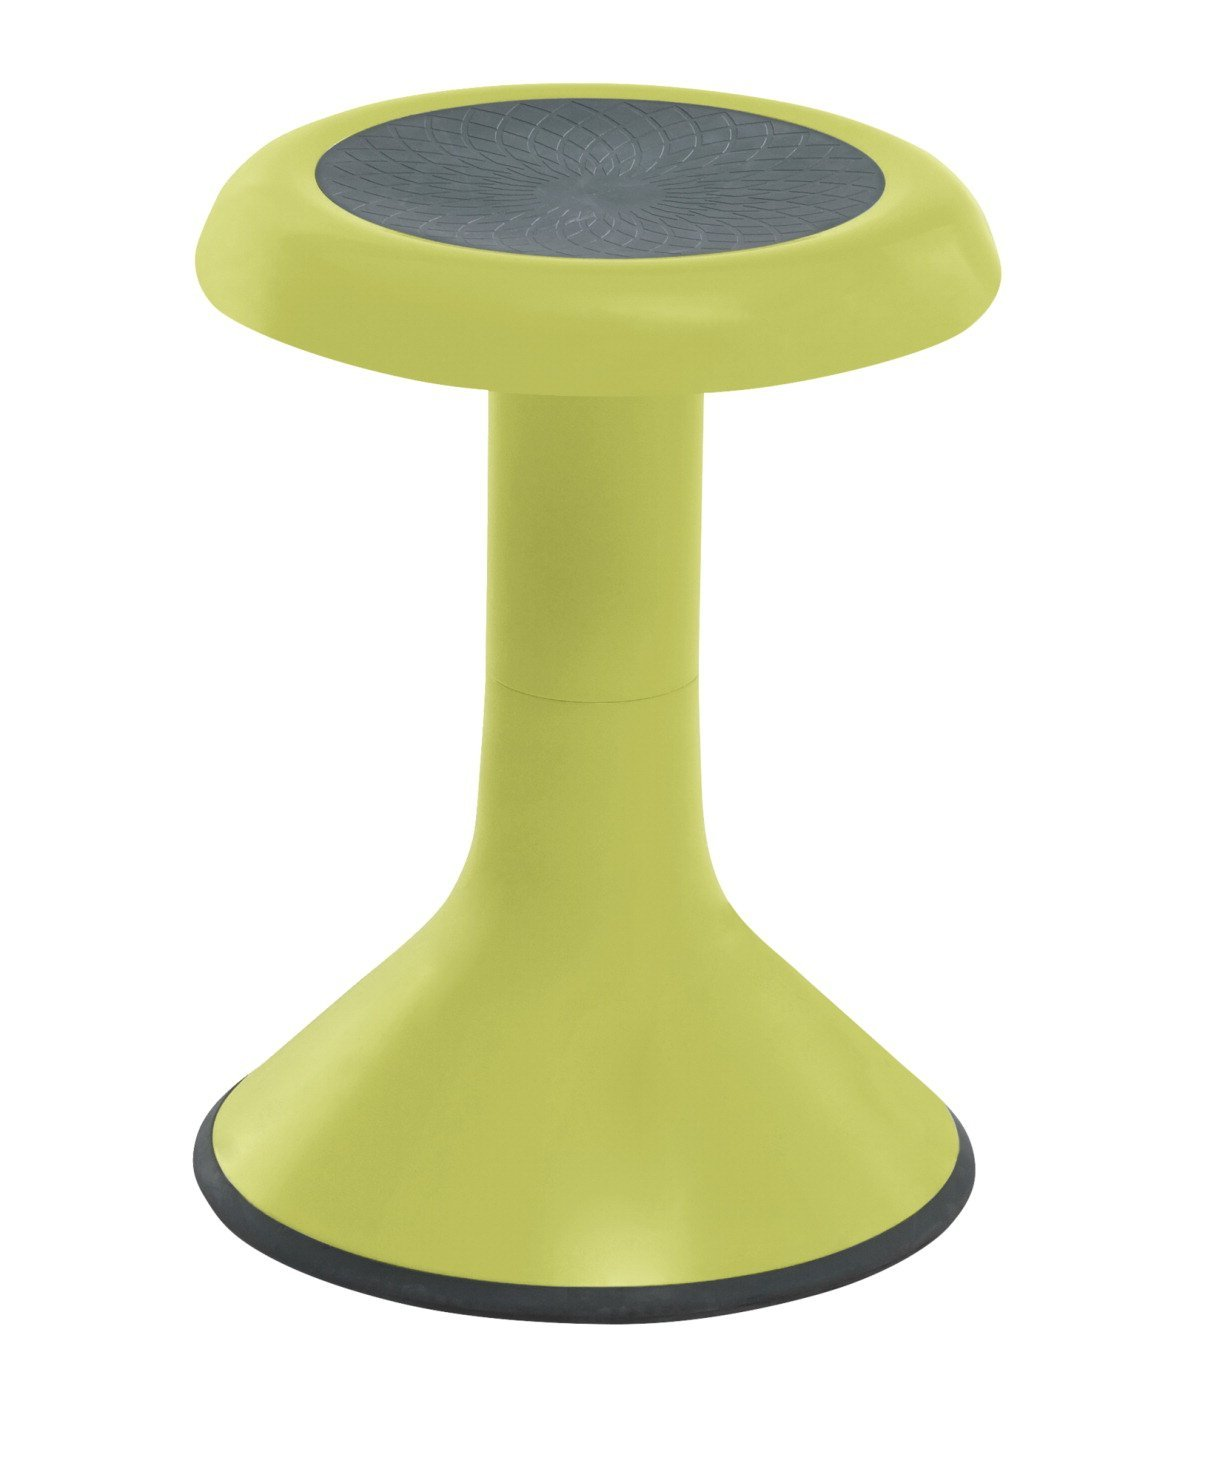 Classroom Select NeoRok Motion Stool, Active Wobble Seating, 20-1/2 inch Seat Height, Pistachio